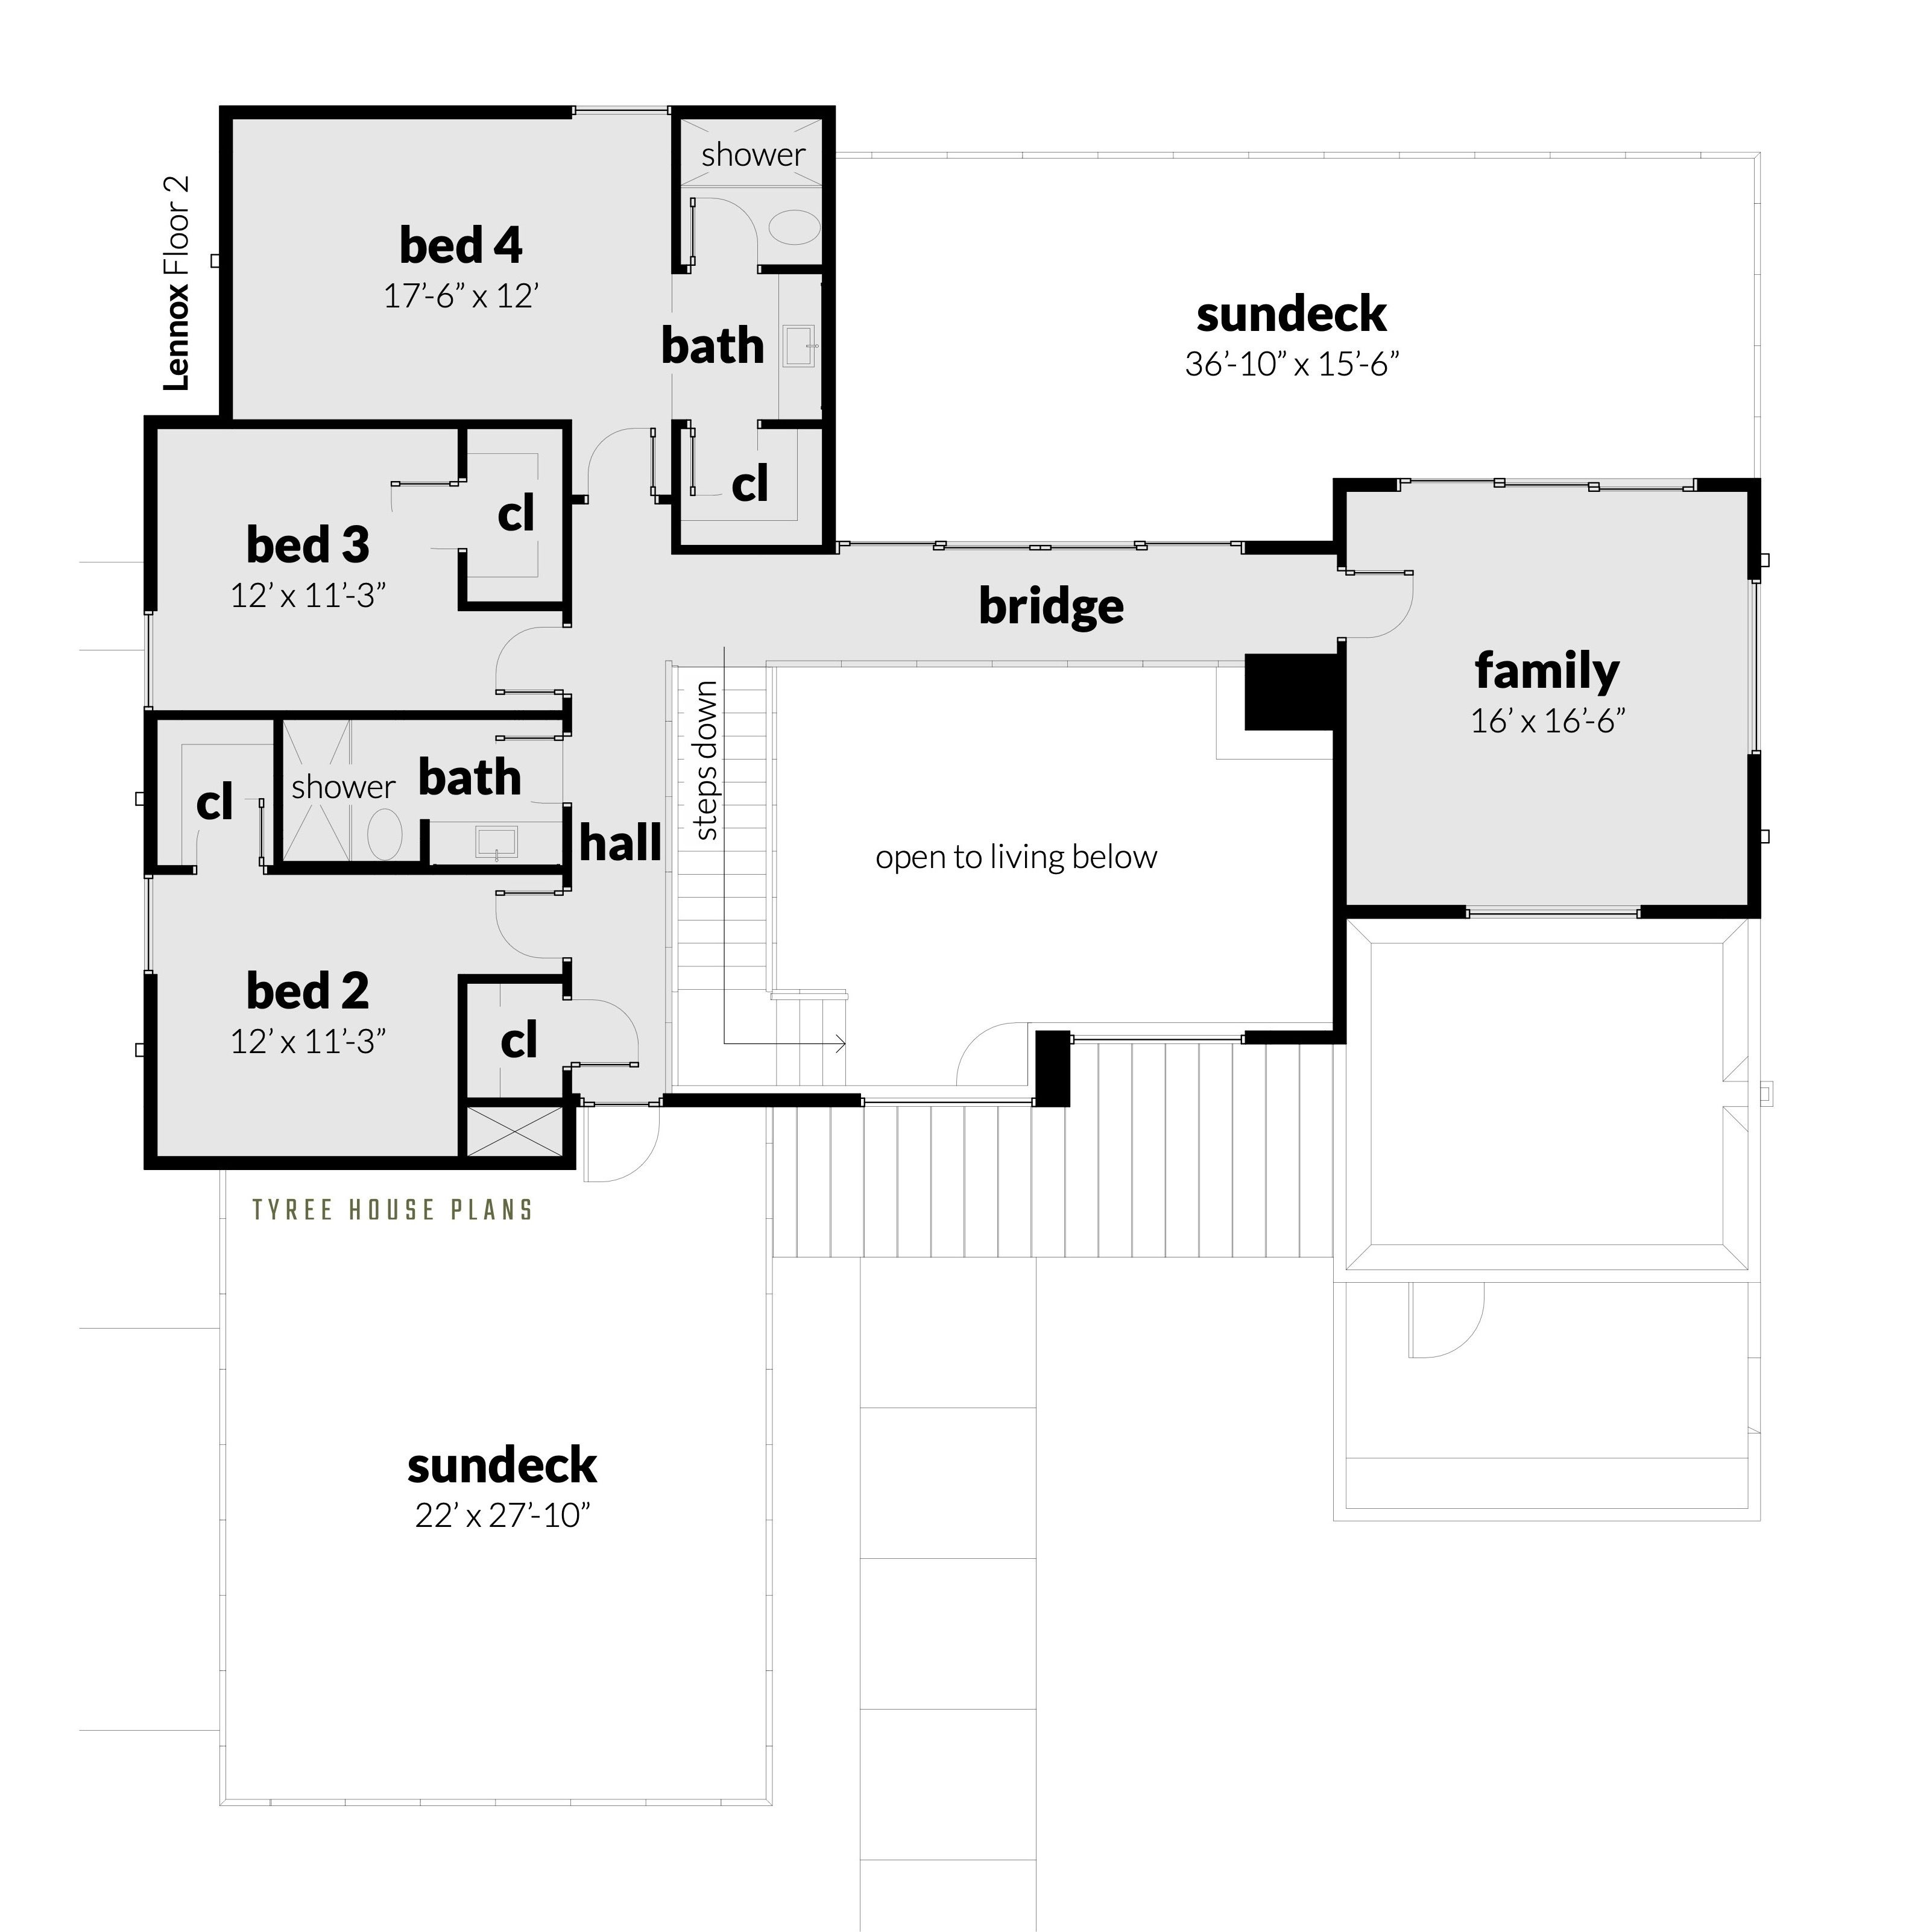 4 Bedroom Modern Home With Private Office Tyree House Plans Modern Style House Plans House Plans Modern House